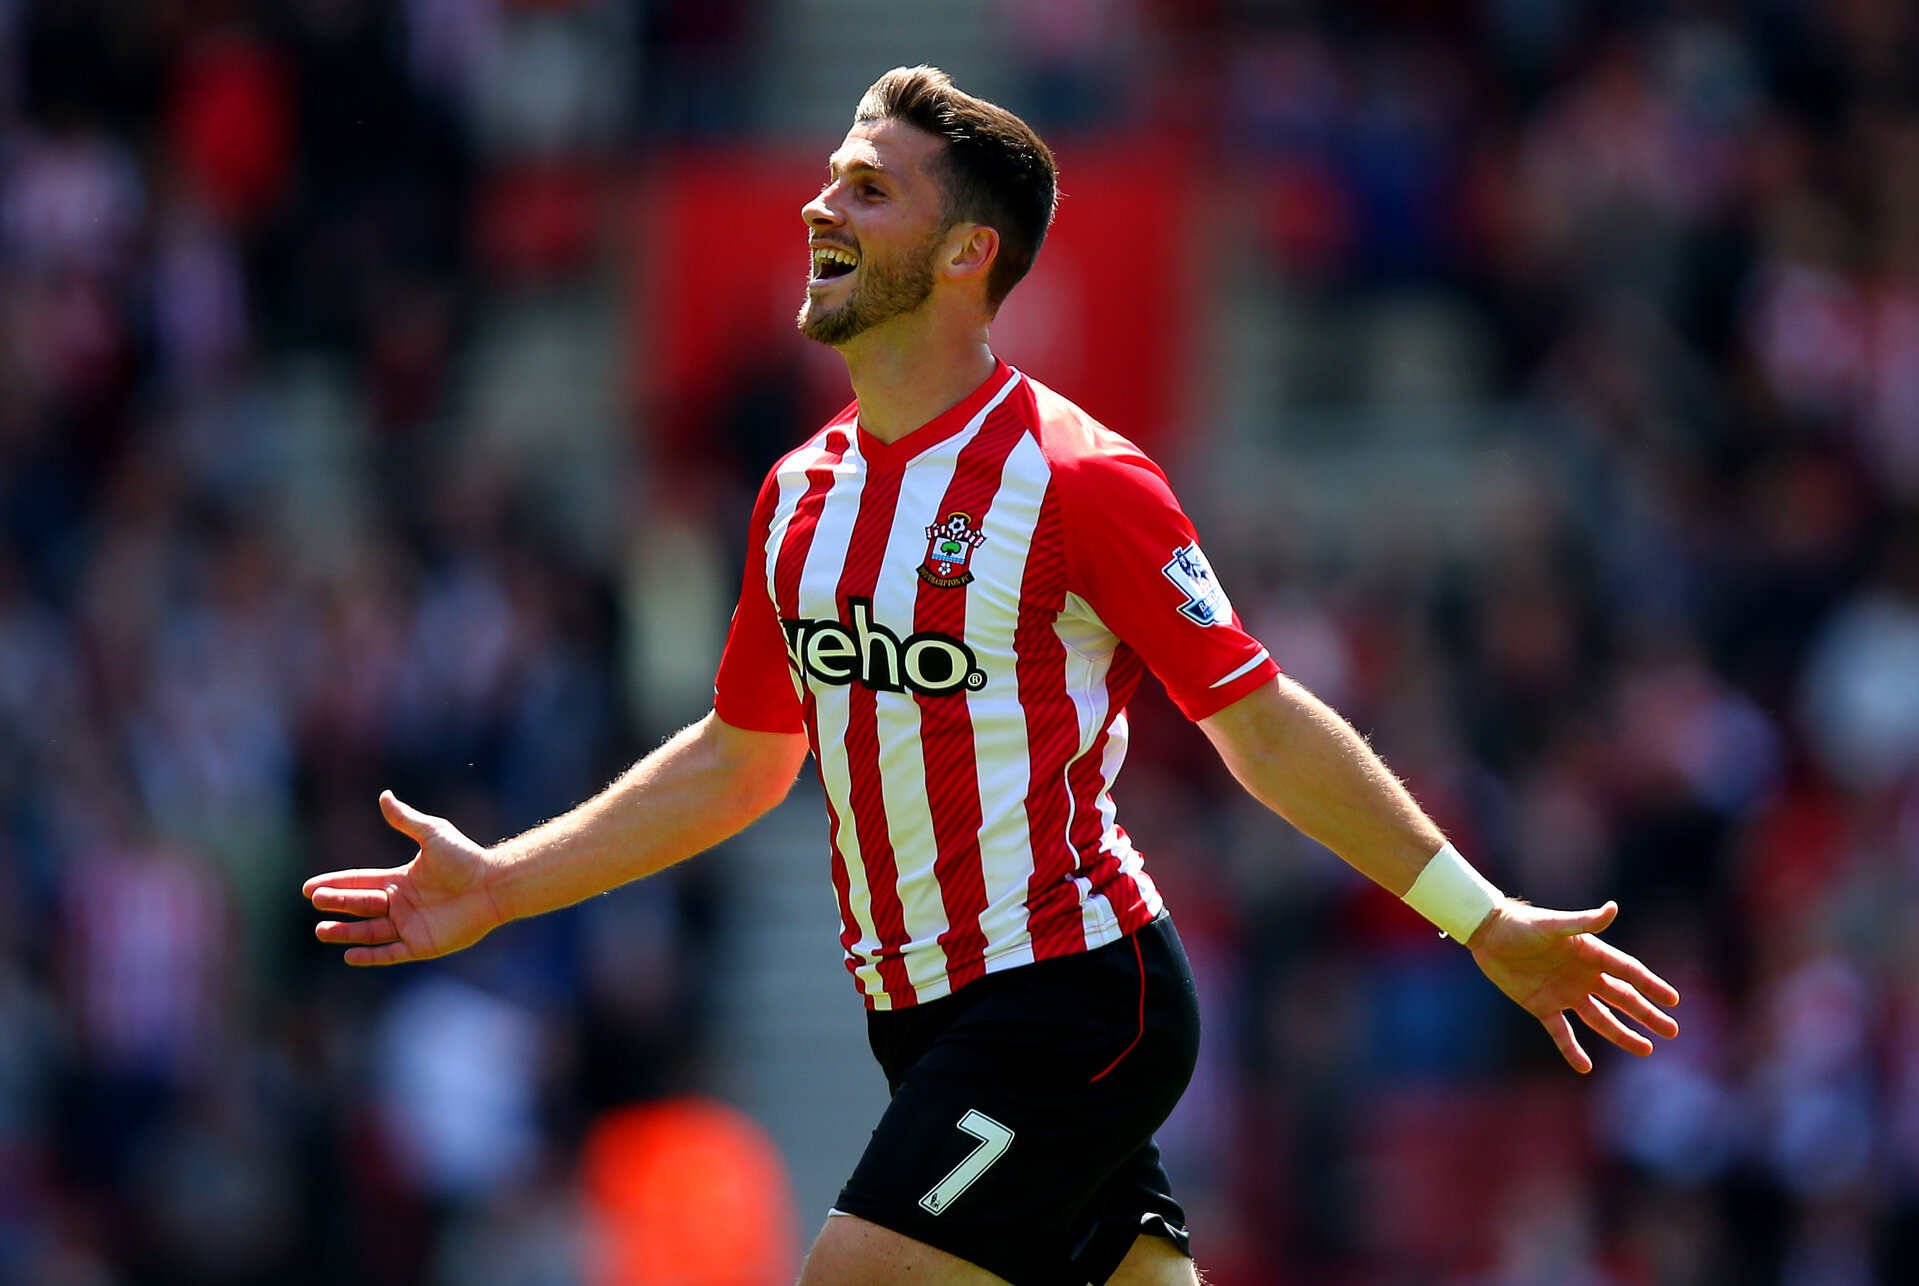 SOUTHAMPTON, ENGLAND - MAY 16:  Shane Long of Southampton celebrates scoring his team's fifth goal during the Barclays Premier League match between Southampton and Aston Villa at St Mary's Stadium on May 16, 2015 in Southampton, England.  (Photo by Bryn Lennon/Getty Images)